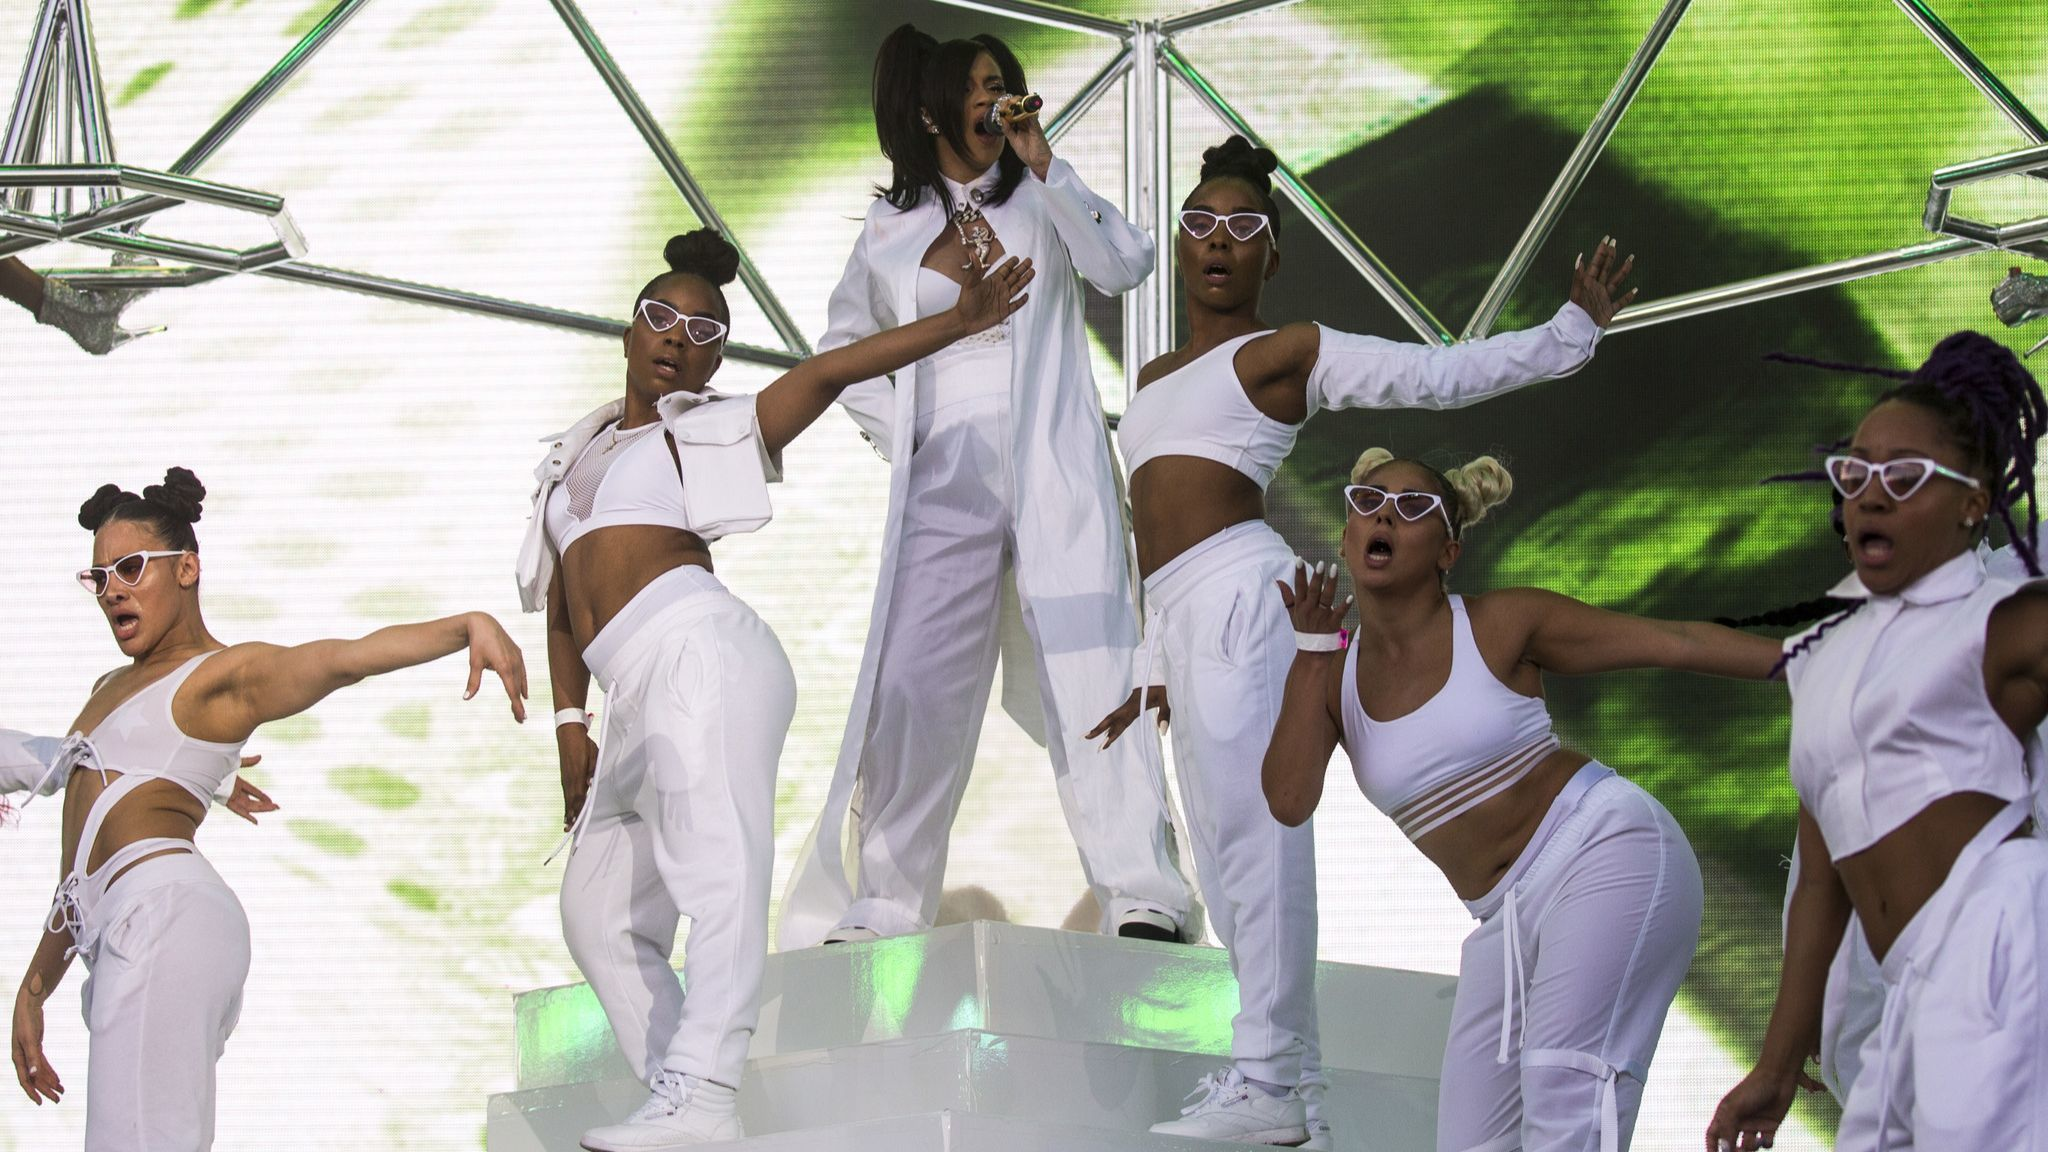 Cardi B and her dancers onstage during the first weekend of the Coachella Arts and Music Festival in Indio, Calif.